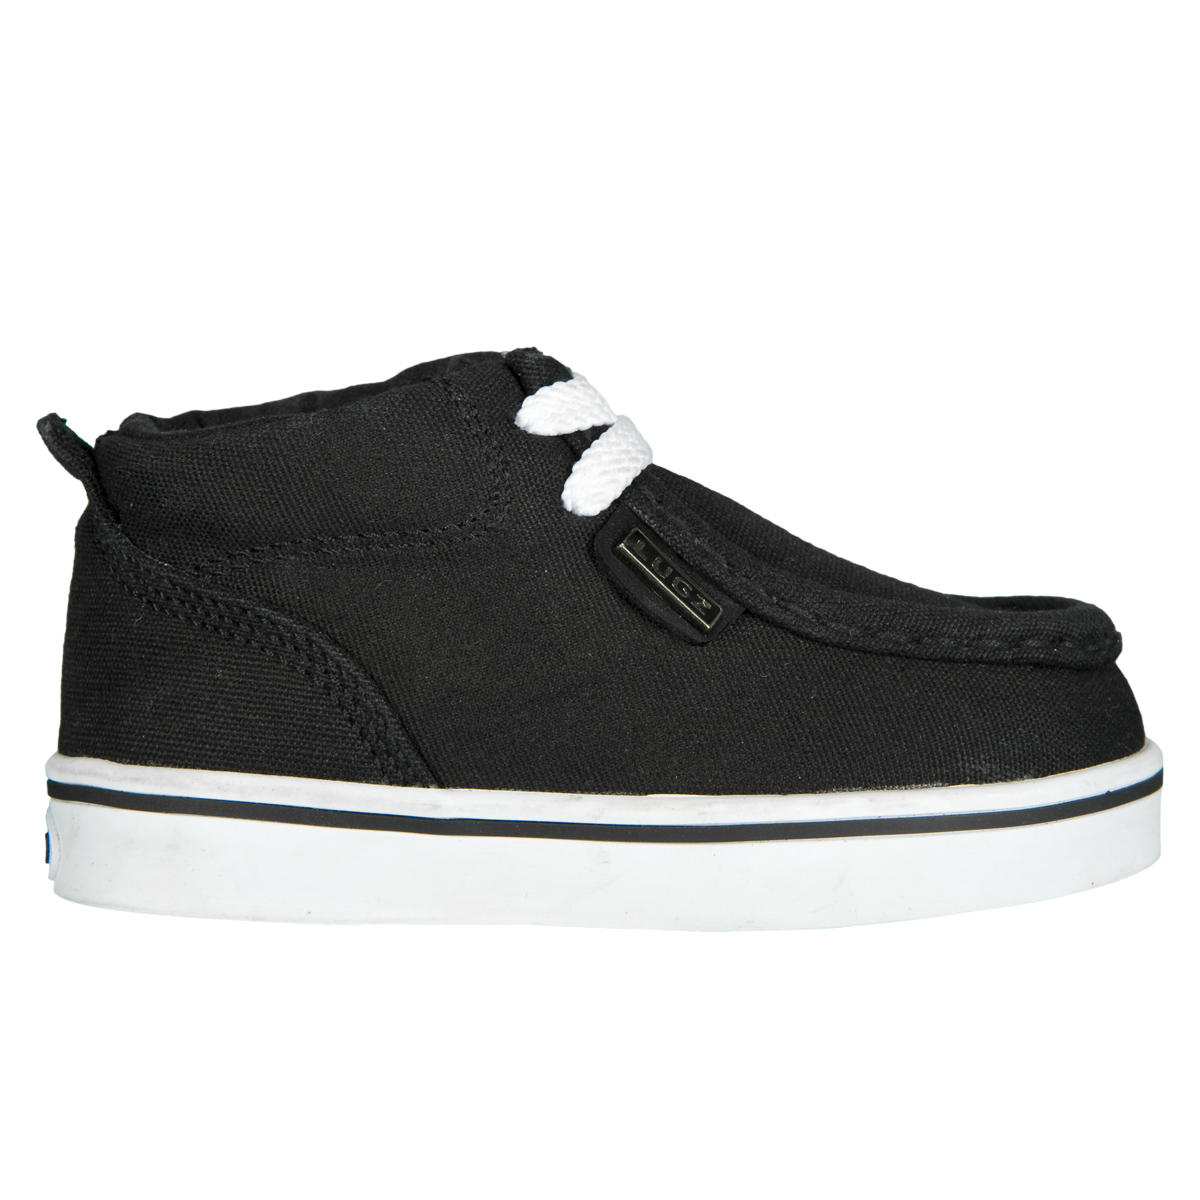 lugz strider infants shoe black white stylish footwear